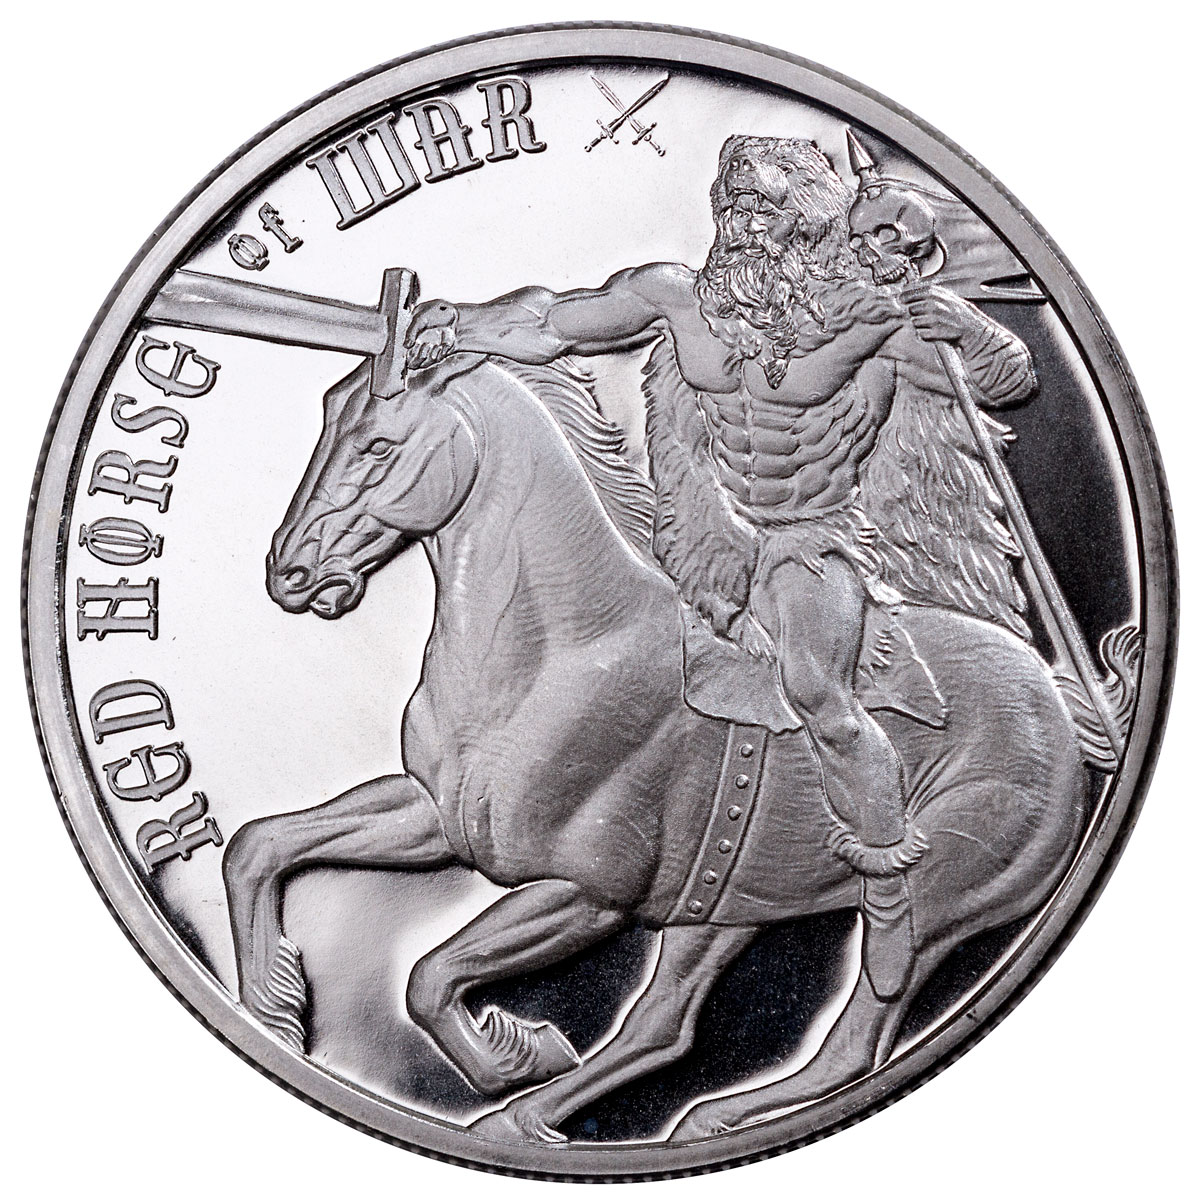 Golden State Mint Four Horsemen of the Apocalypse - Red Horse of War 1 oz Silver Round